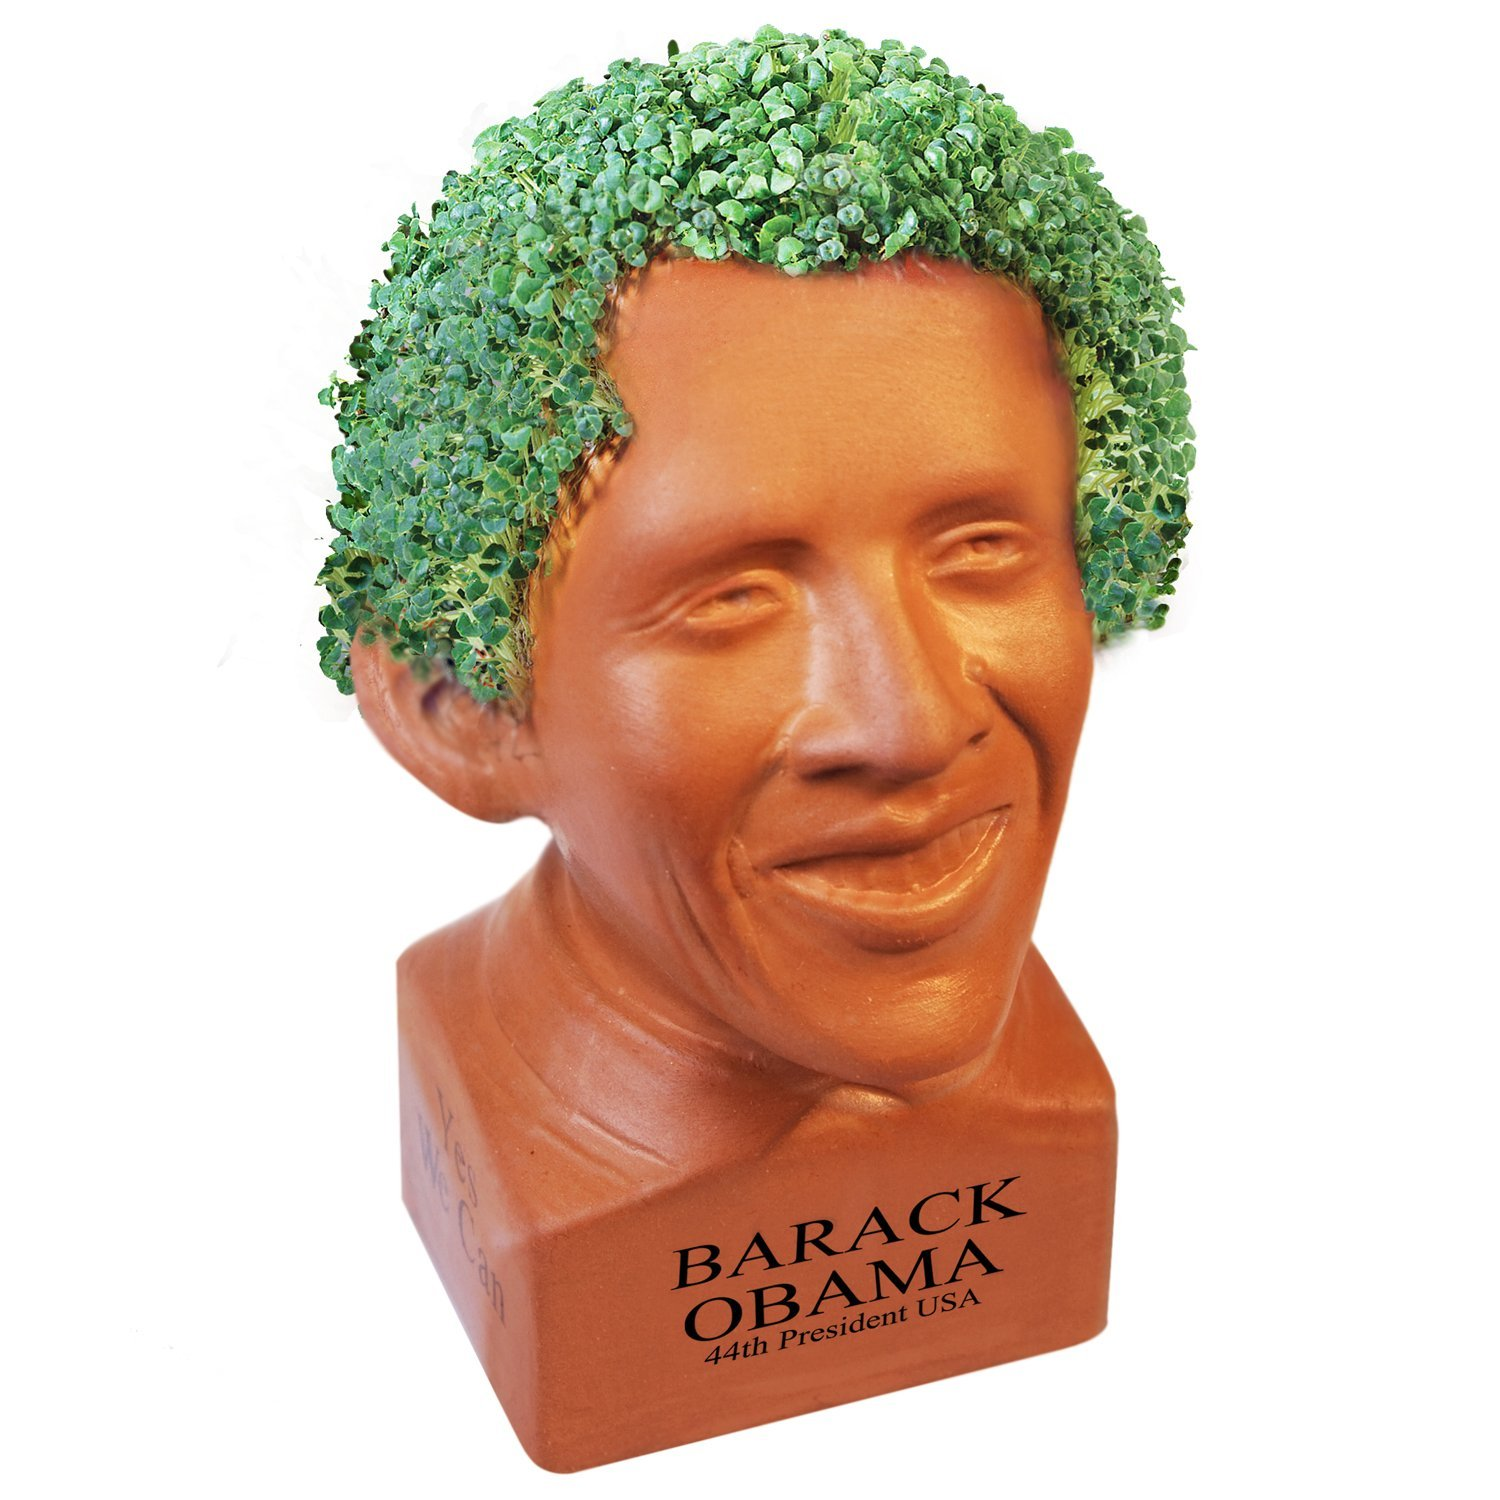 chia pet 10 fanciful but best selling products in america!